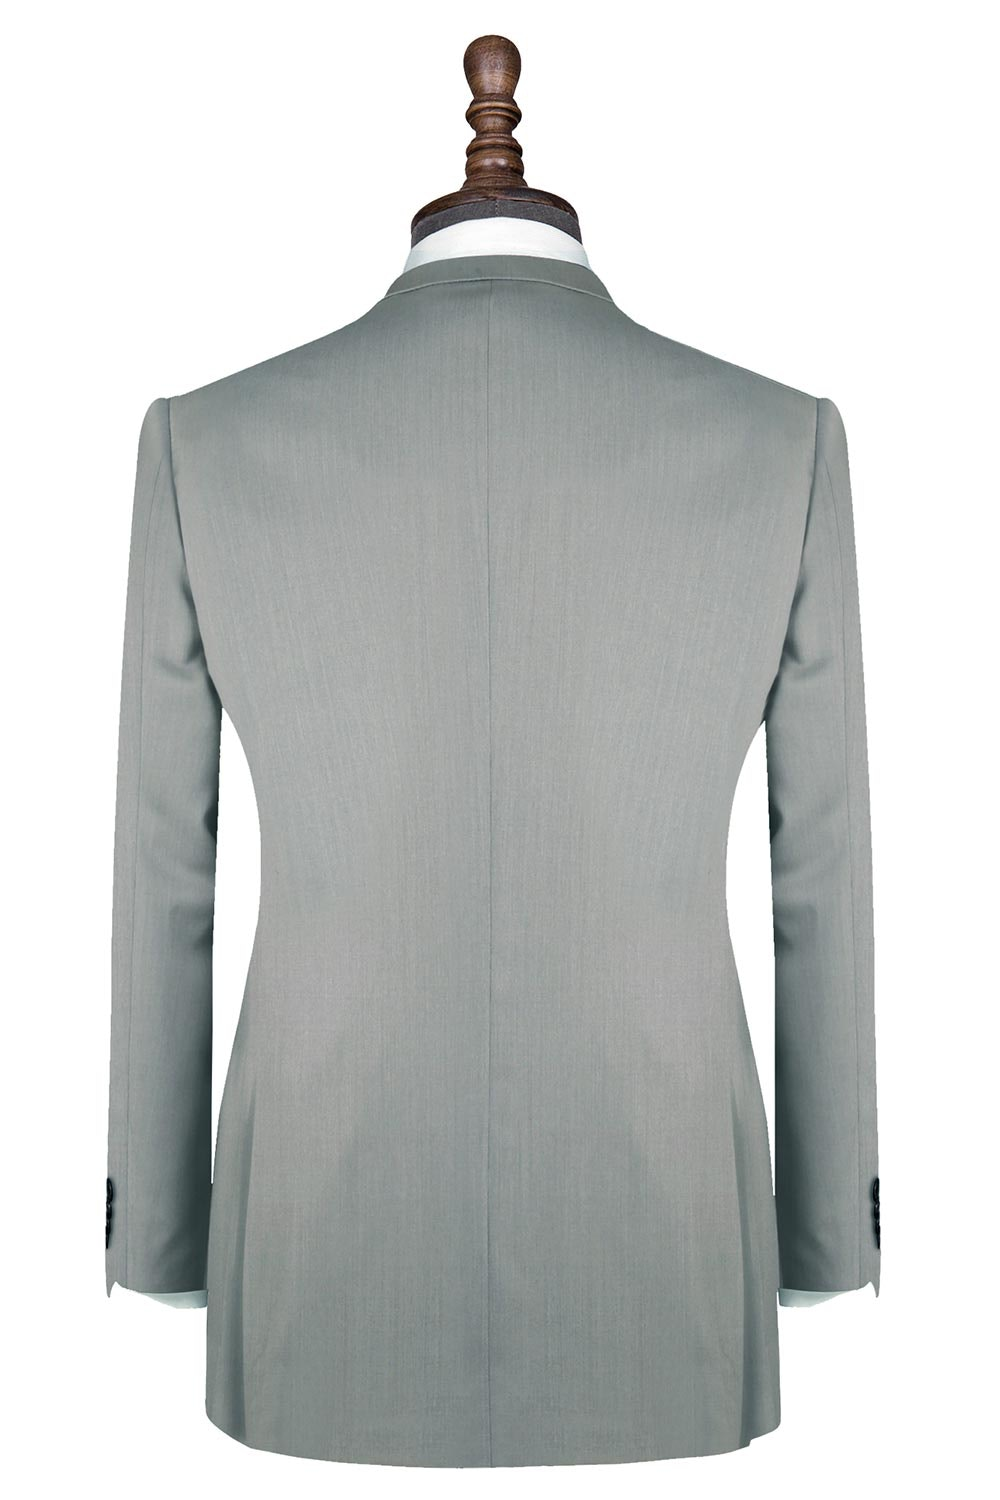 InStitchu Collection The Monmouth Jacket